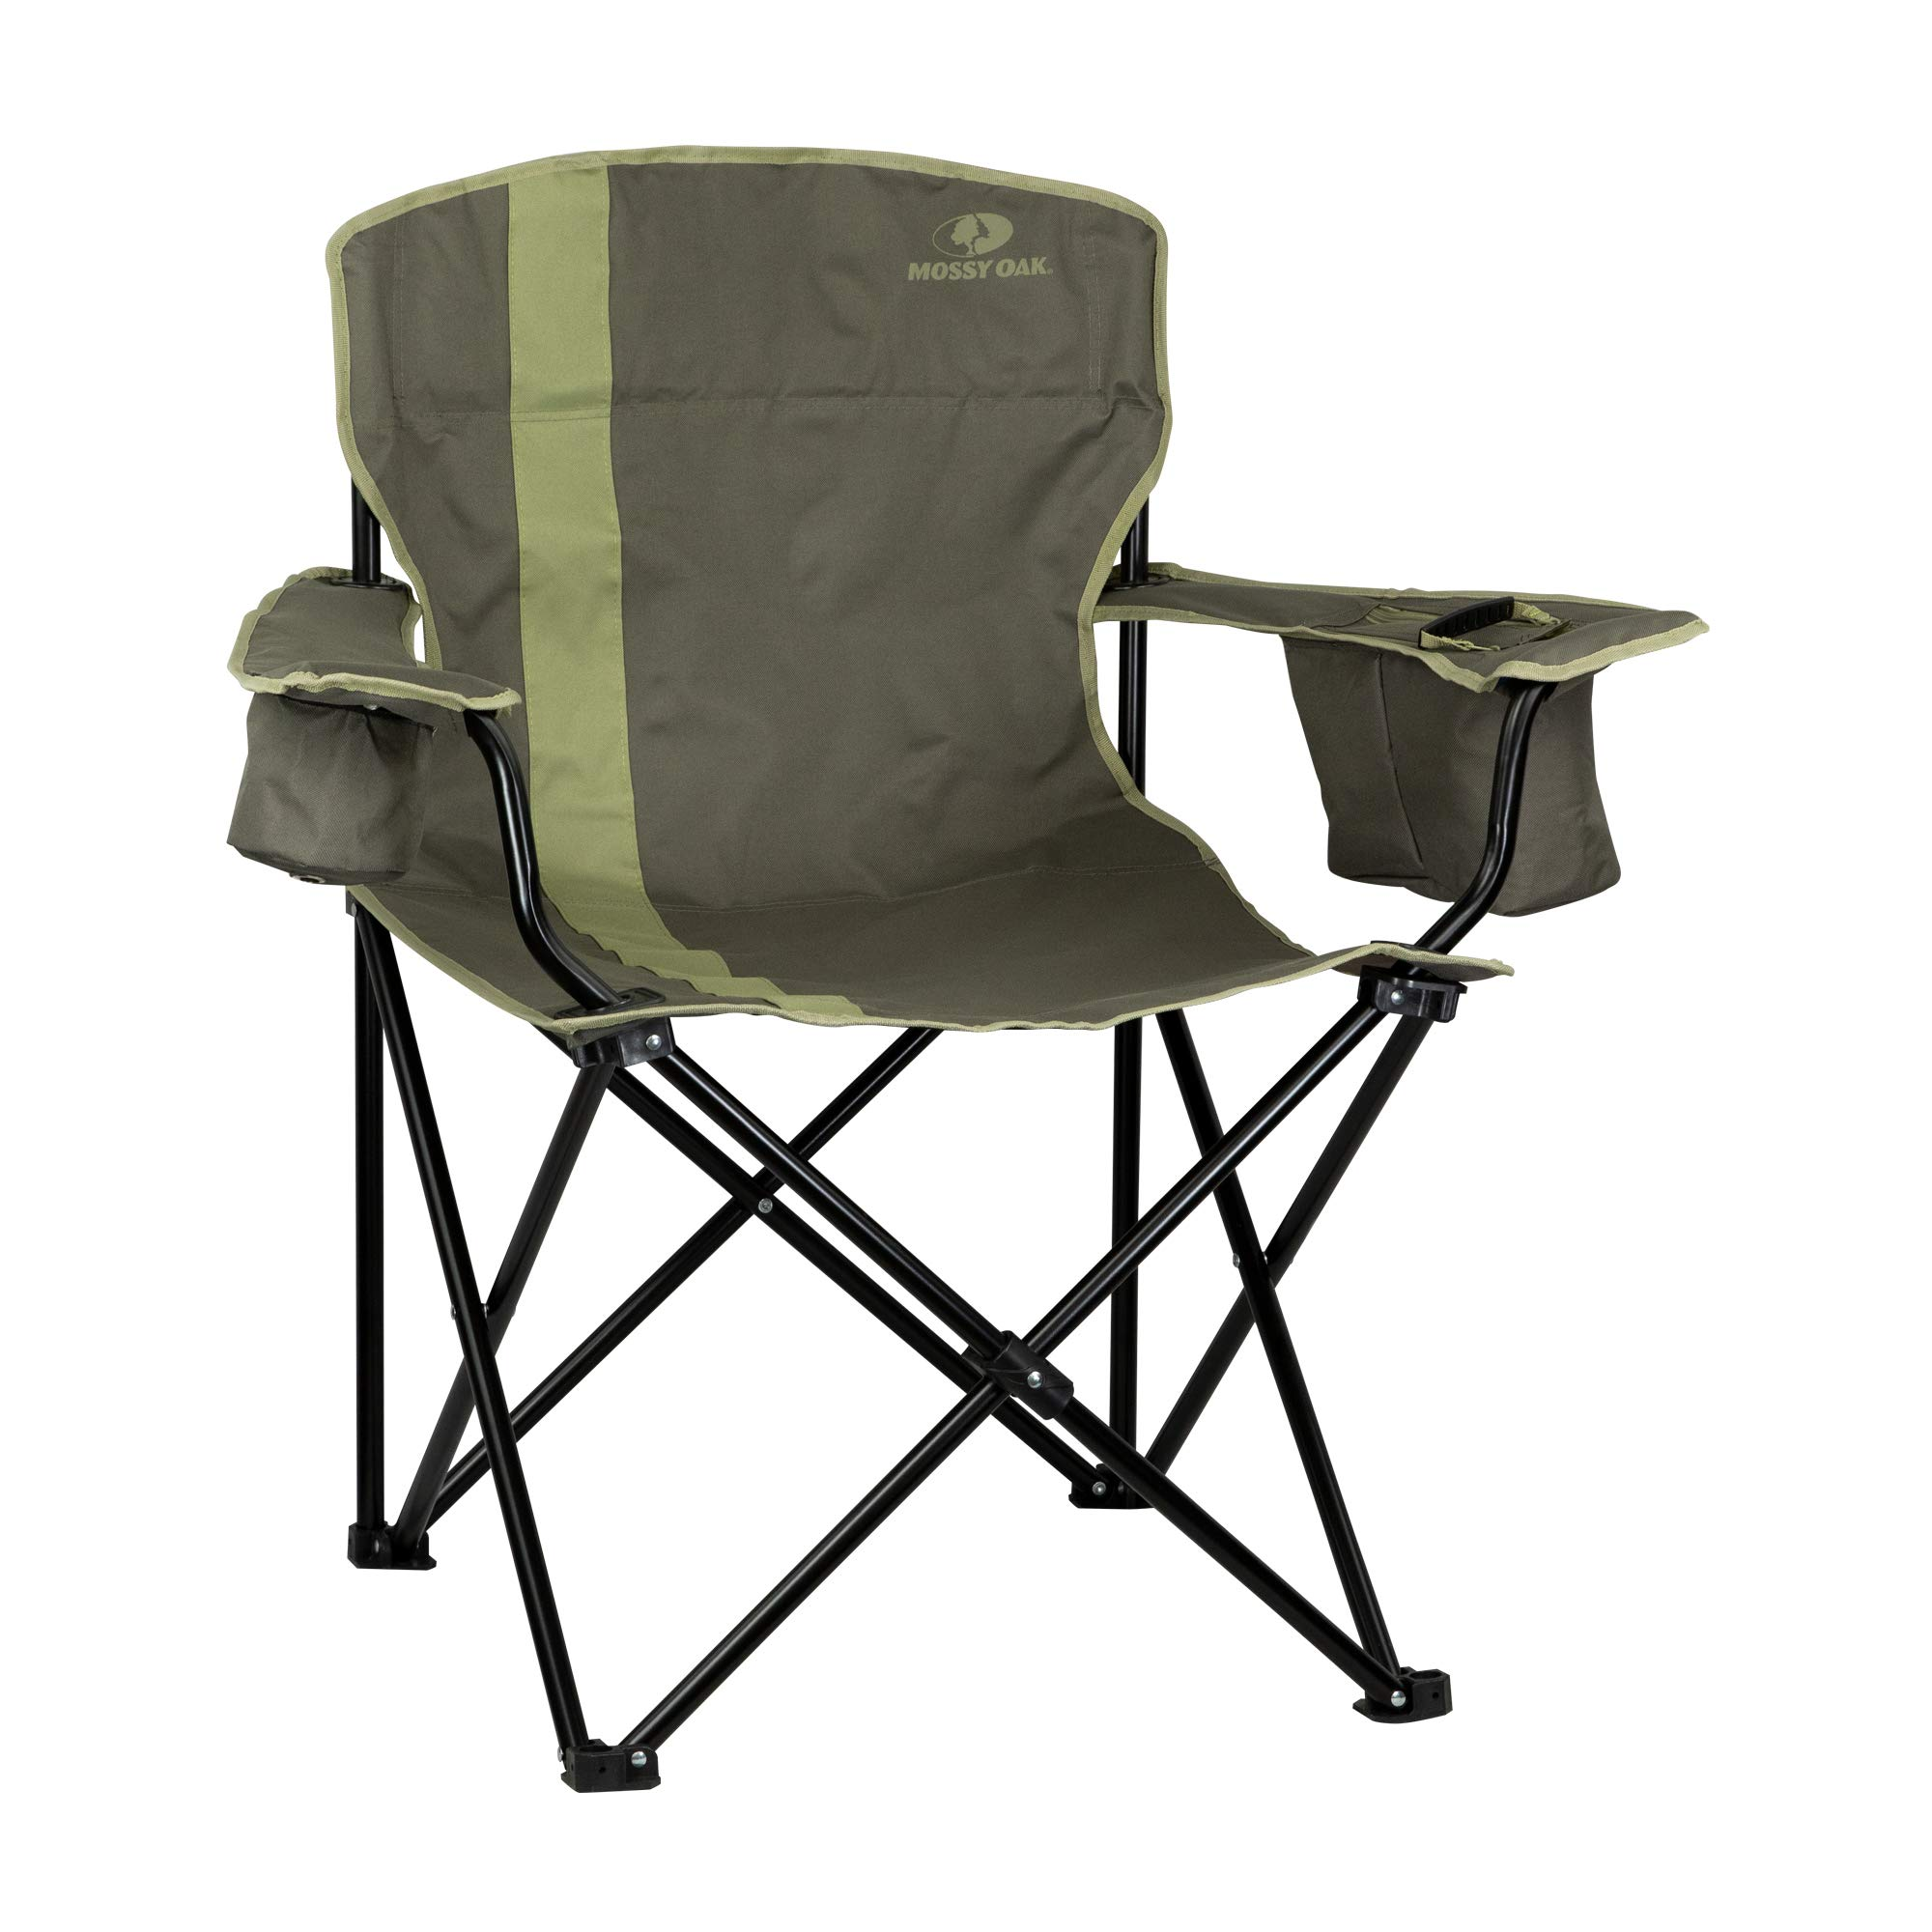 Awesome Details About Mossy Oak Heavy Duty Folding Camping Chairs Lawn Chair Machost Co Dining Chair Design Ideas Machostcouk